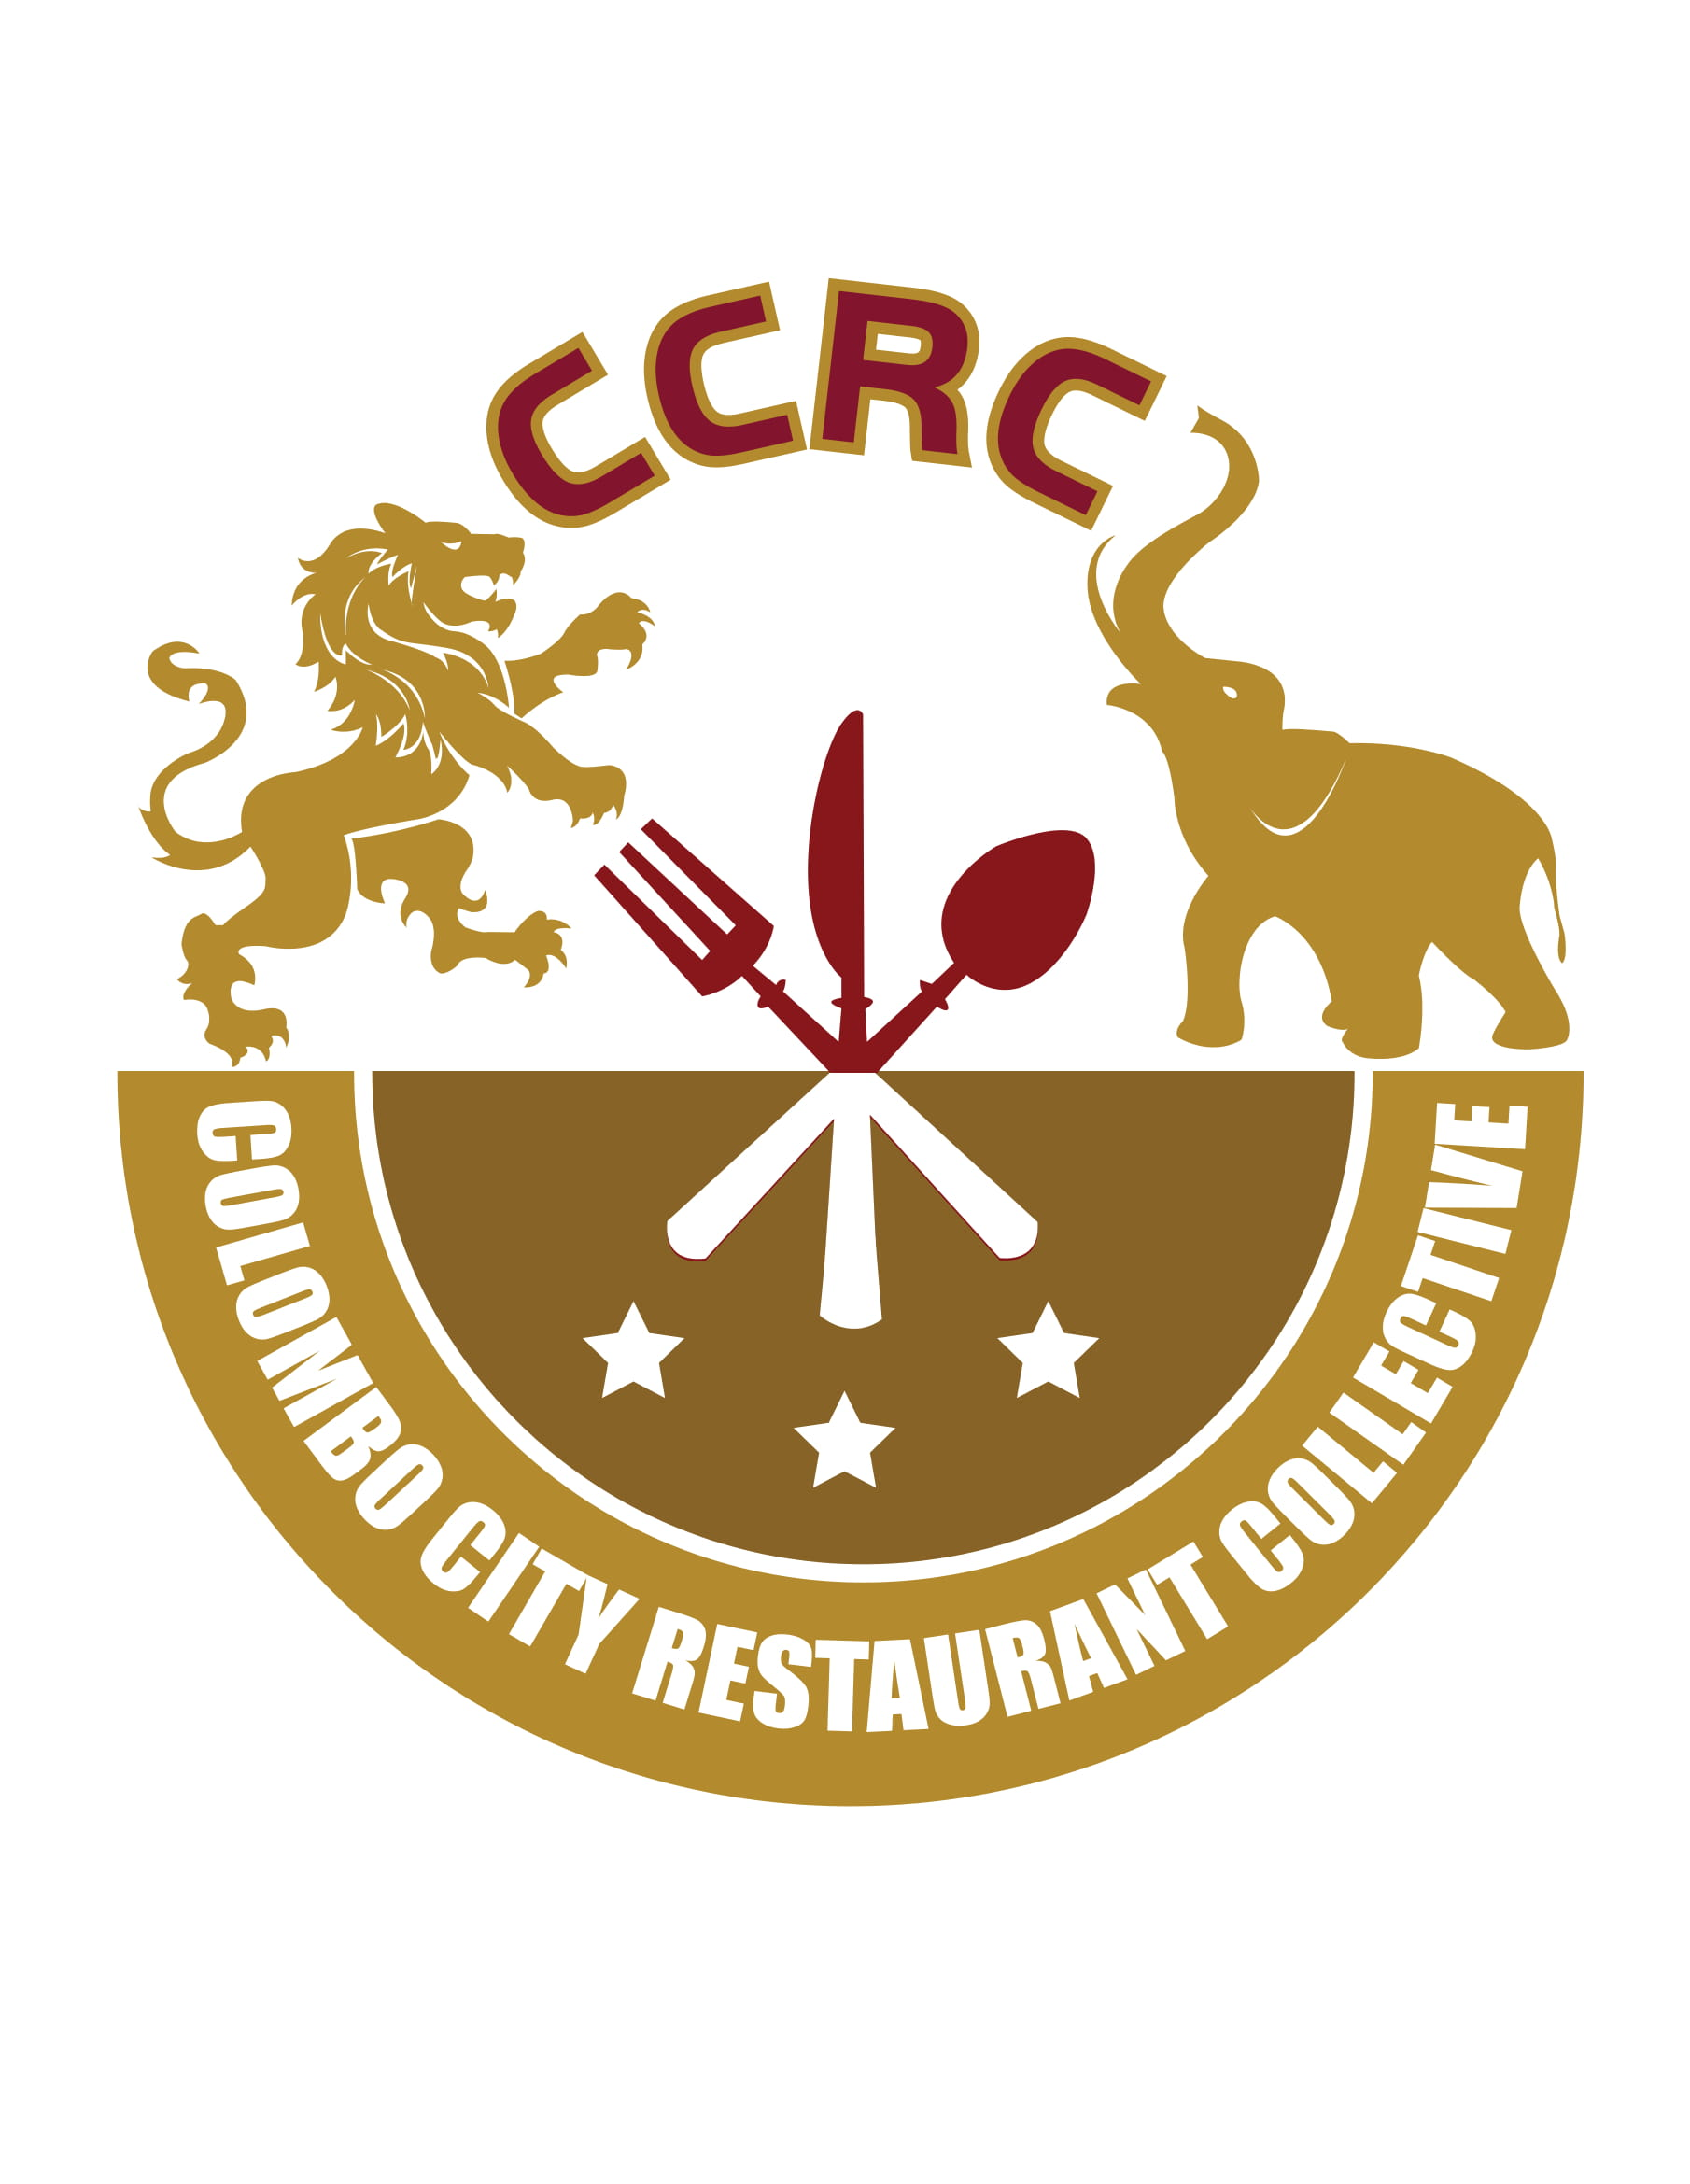 Colombo City Restaurant Collective